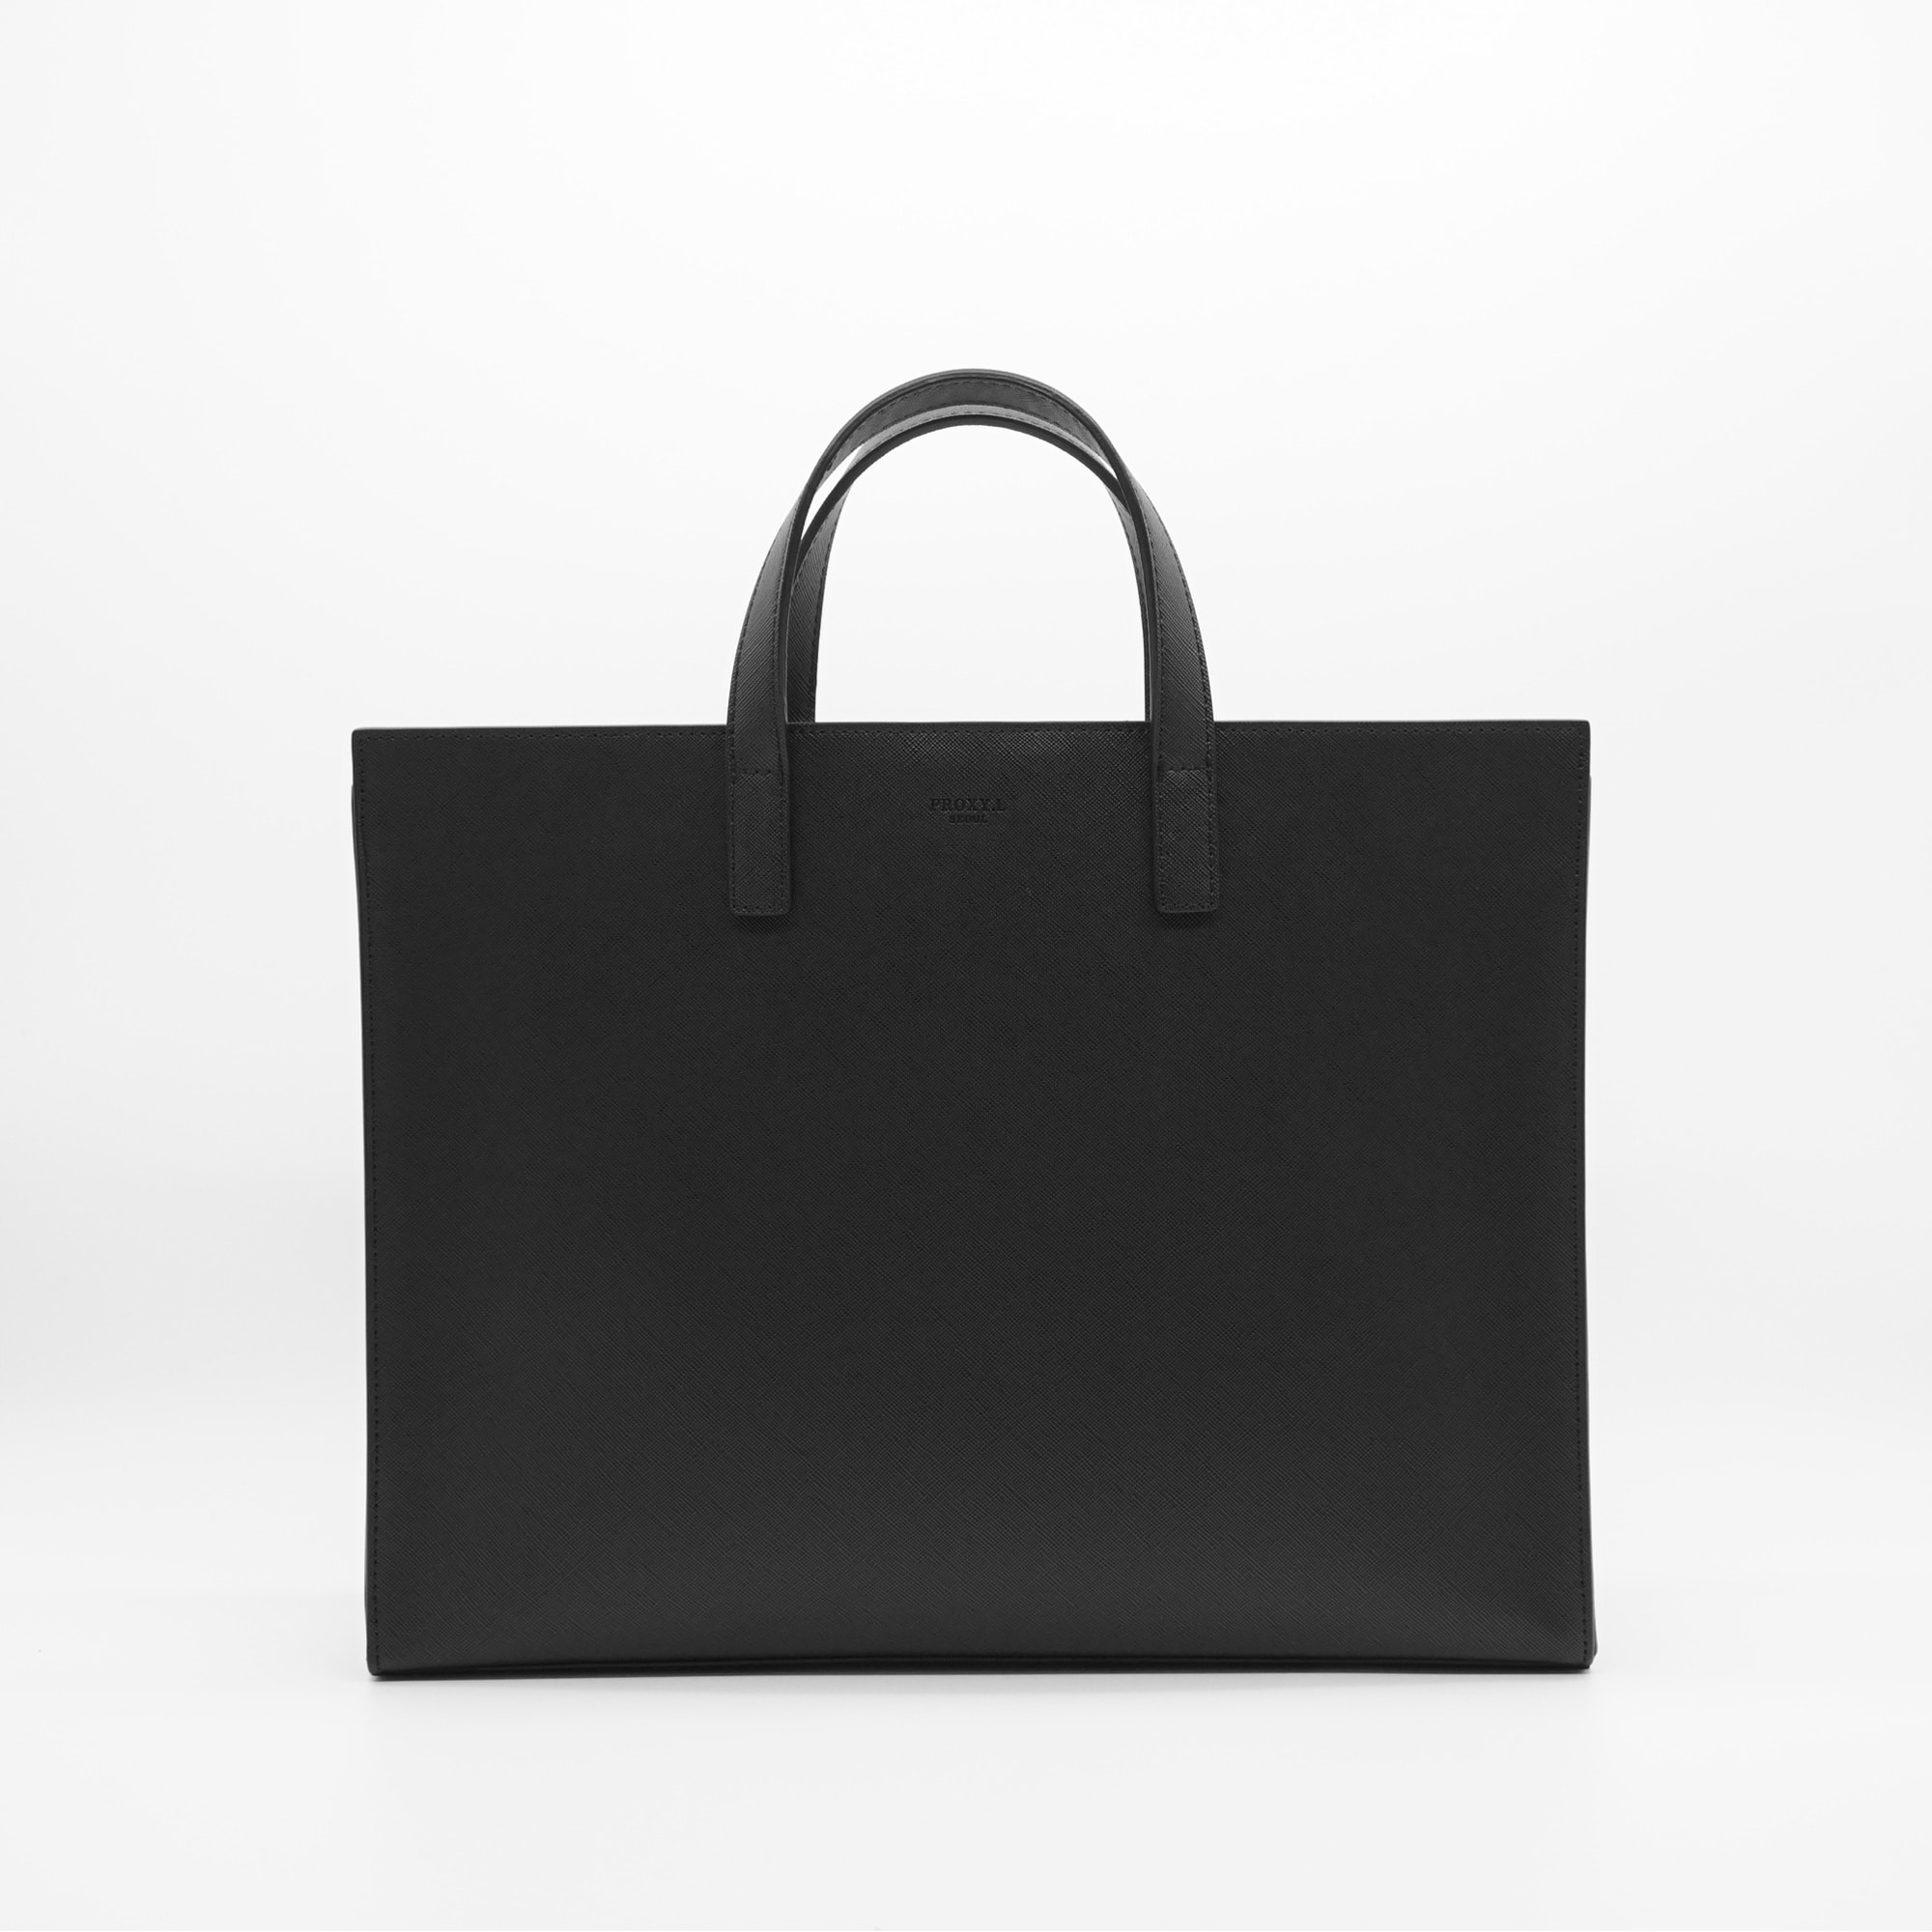 vegan leather horizon tote regular (BK)